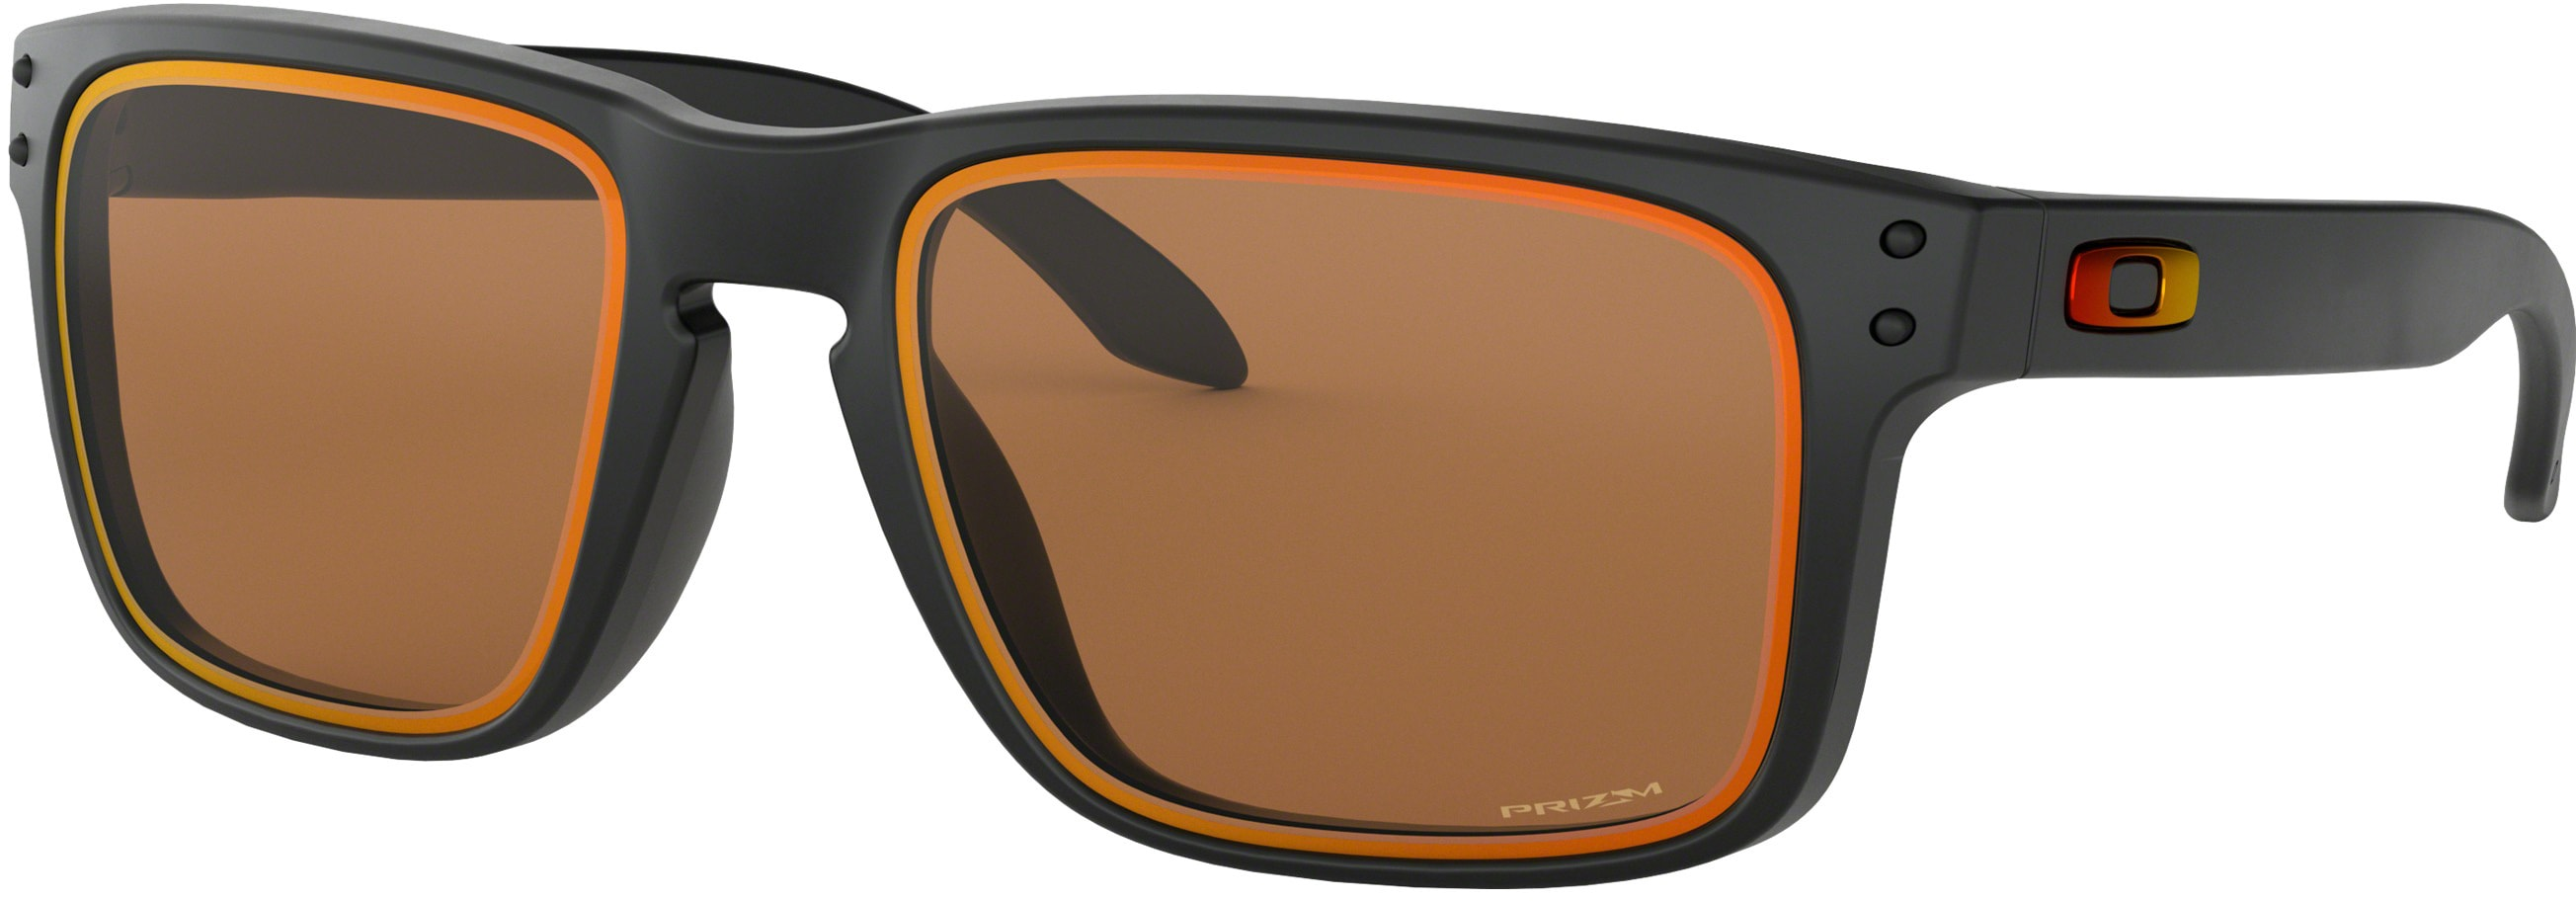 Oakley Holbrook Fire and Ice Collection Sunglasses